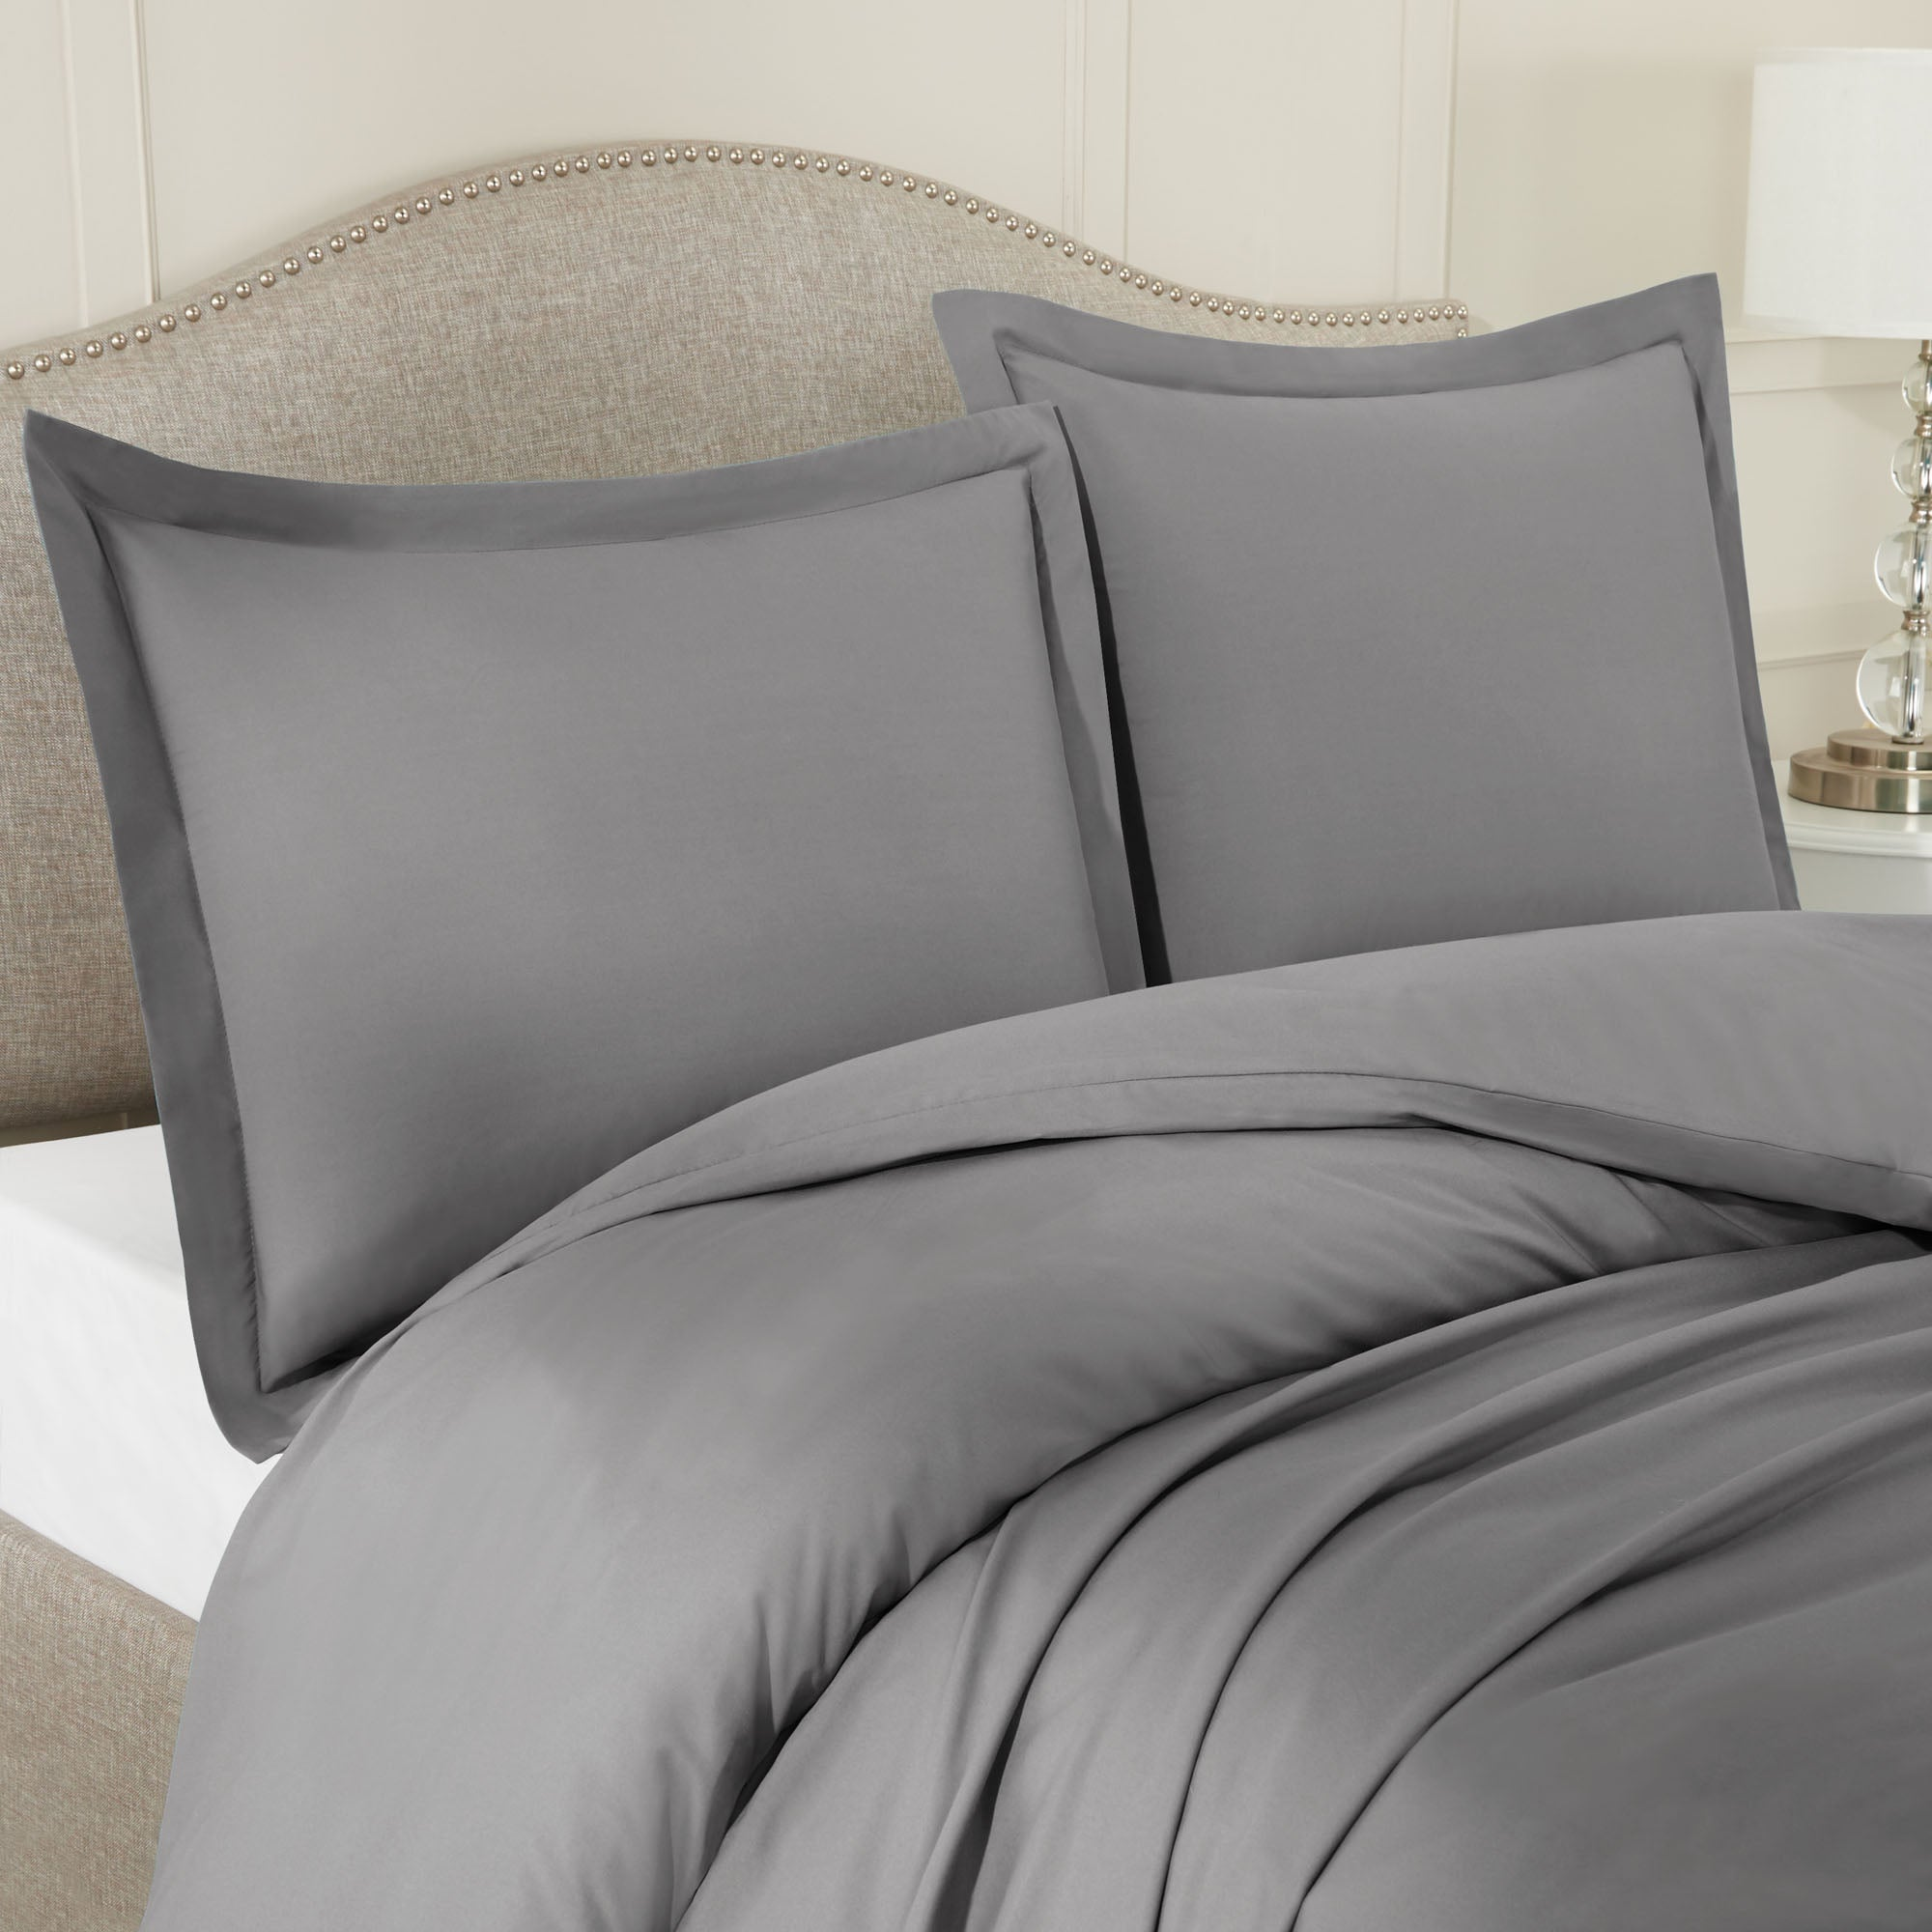 Nestl Bedding Microfiber Duvet Cover Sets (1 Duvet Cover, 2 Pillowshams)